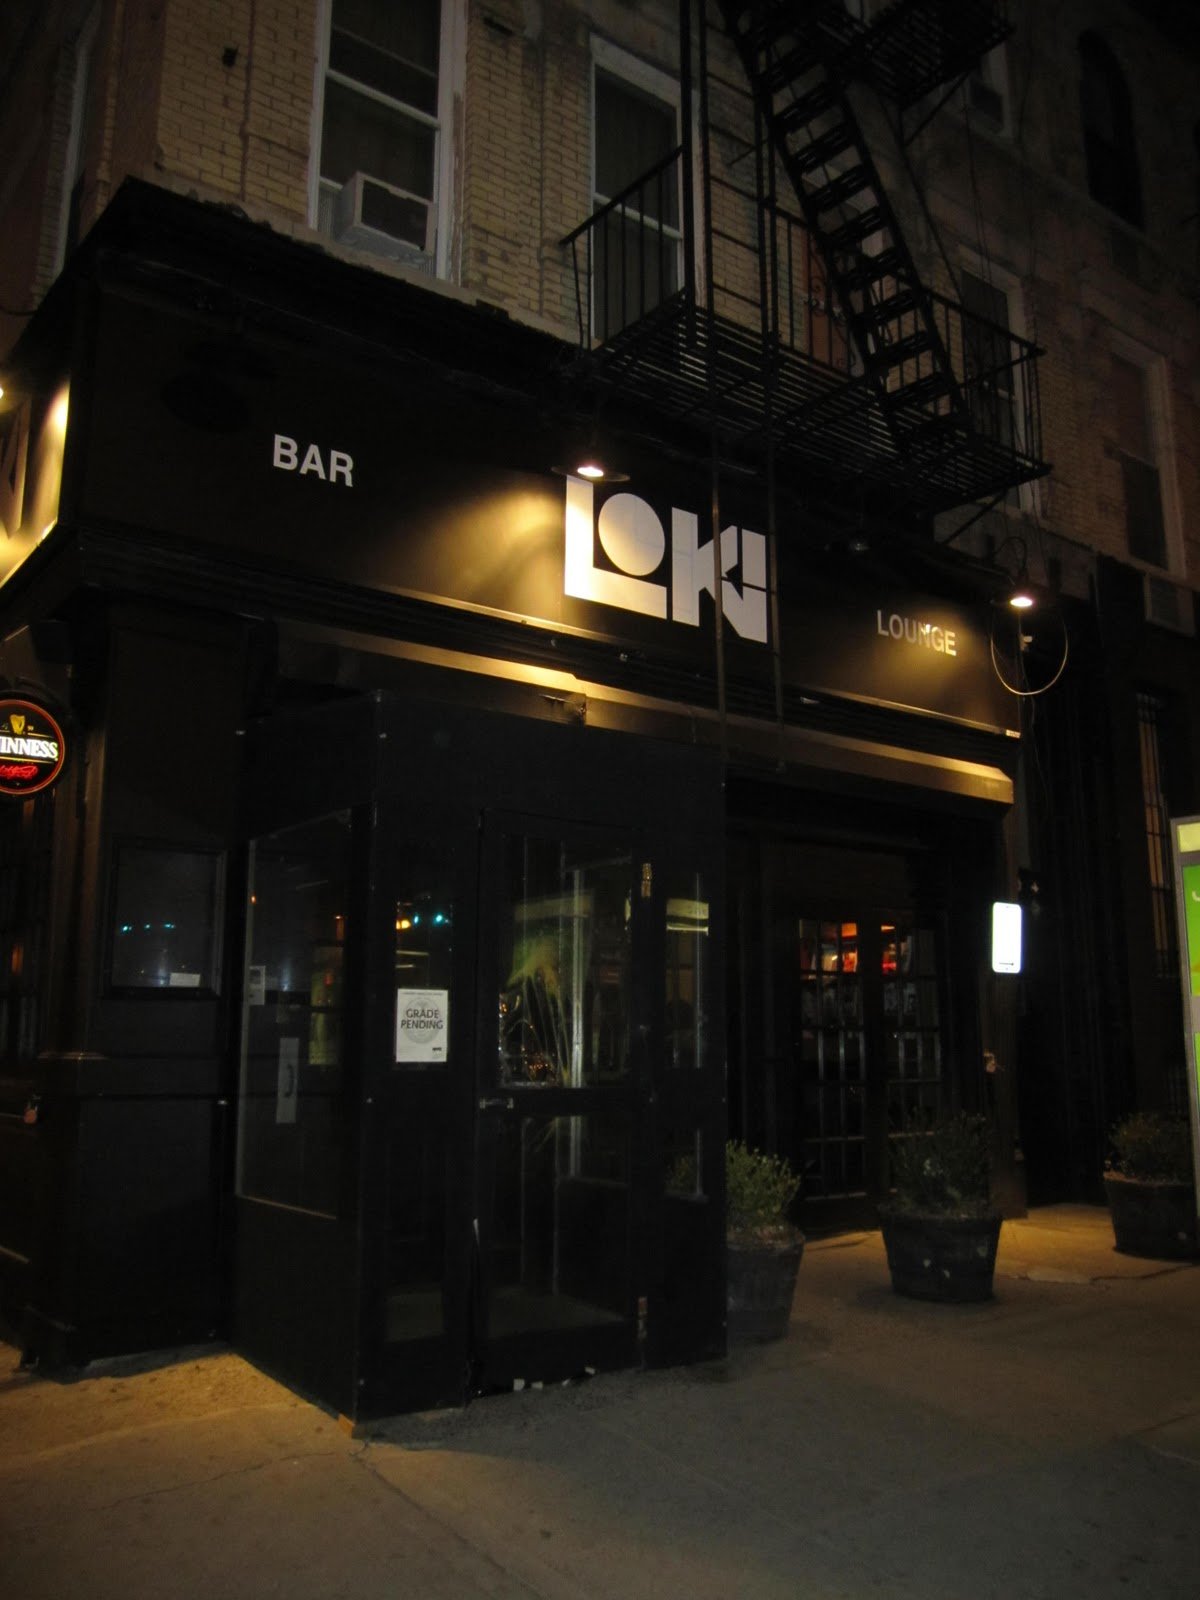 The kinky chronicle out and about a night in brooklyn part 2 talk about a drastic difference loki lounge is a huge bar with high ceilings and a large lounge area this lounge seemed to be laid back almost serene sciox Choice Image